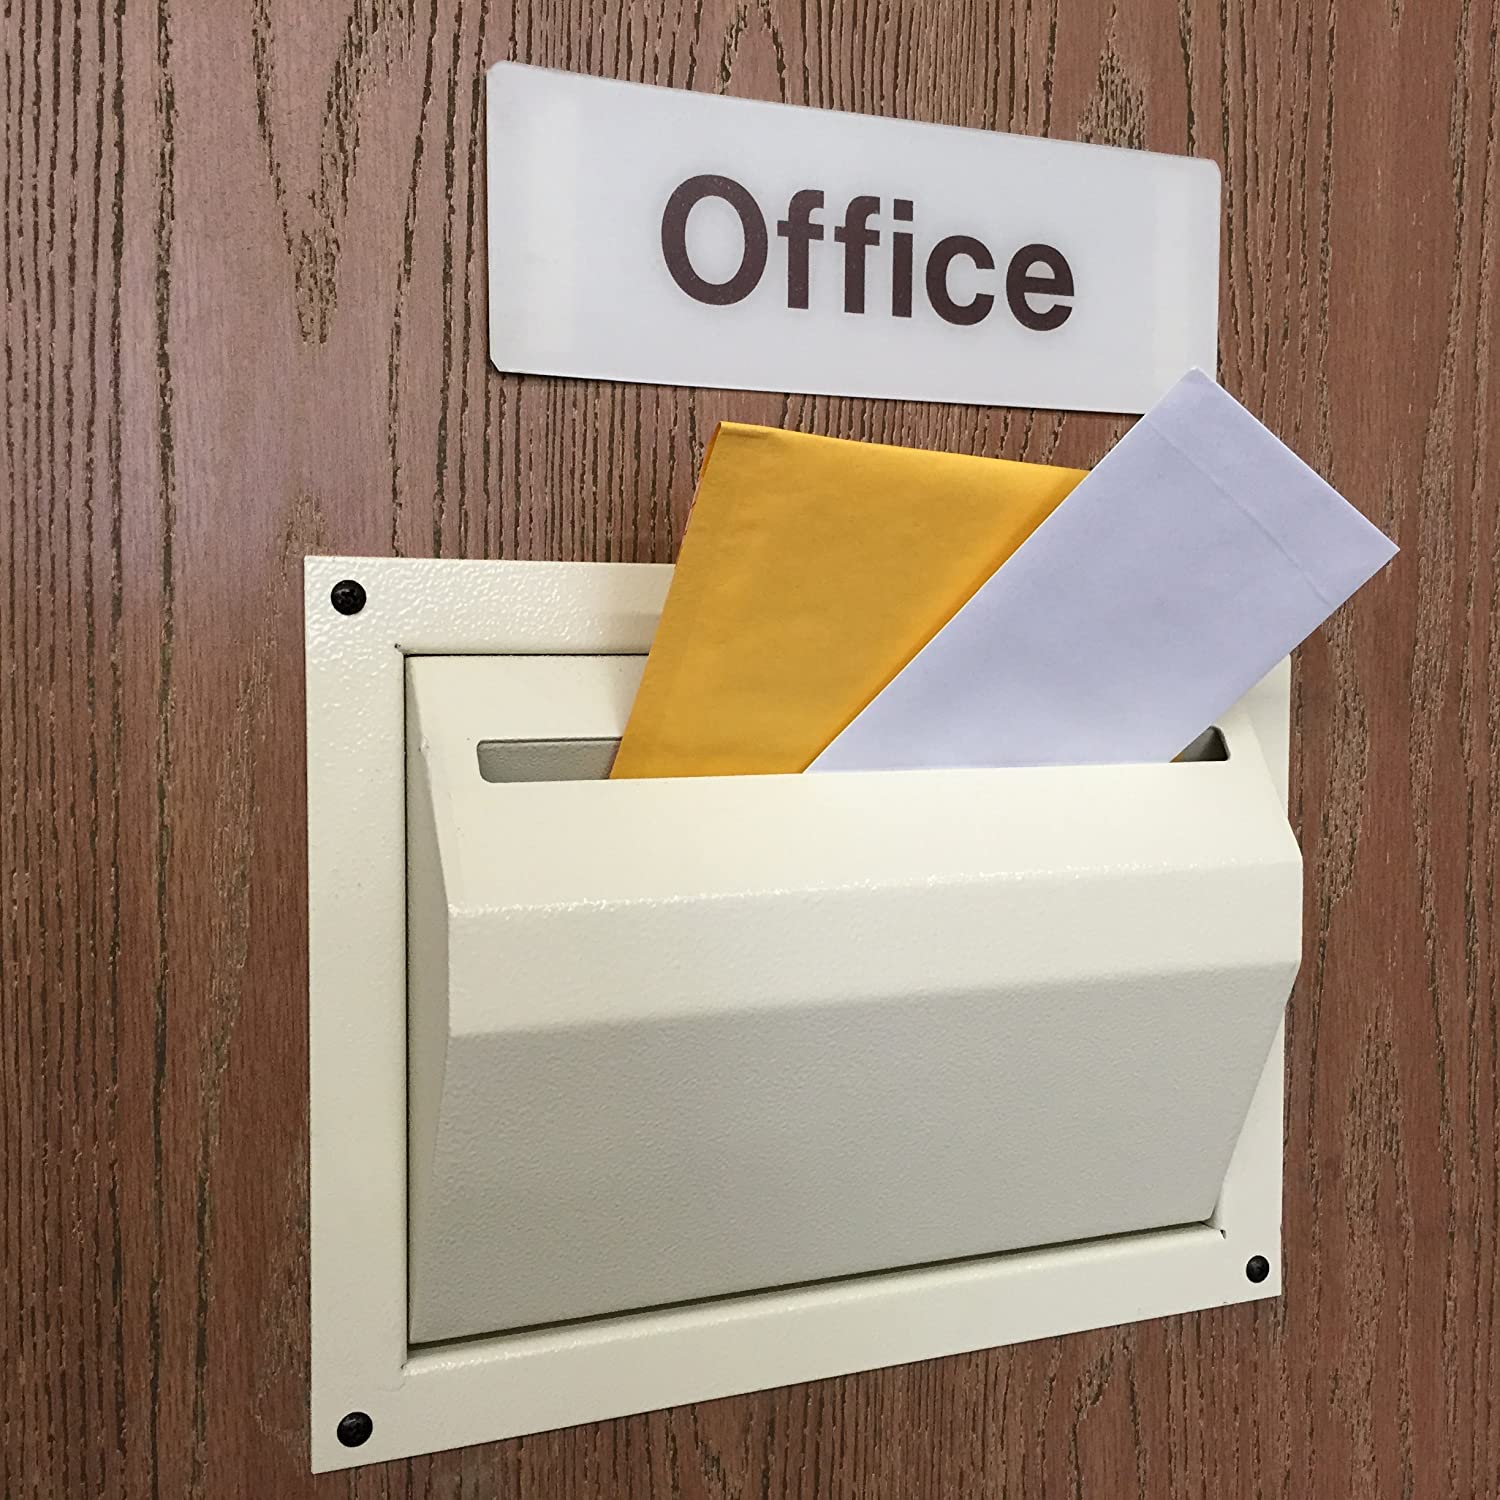 Protex Through-The-Door Letter Superlatite WSR-162 We OFFer at cheap prices Drop Box